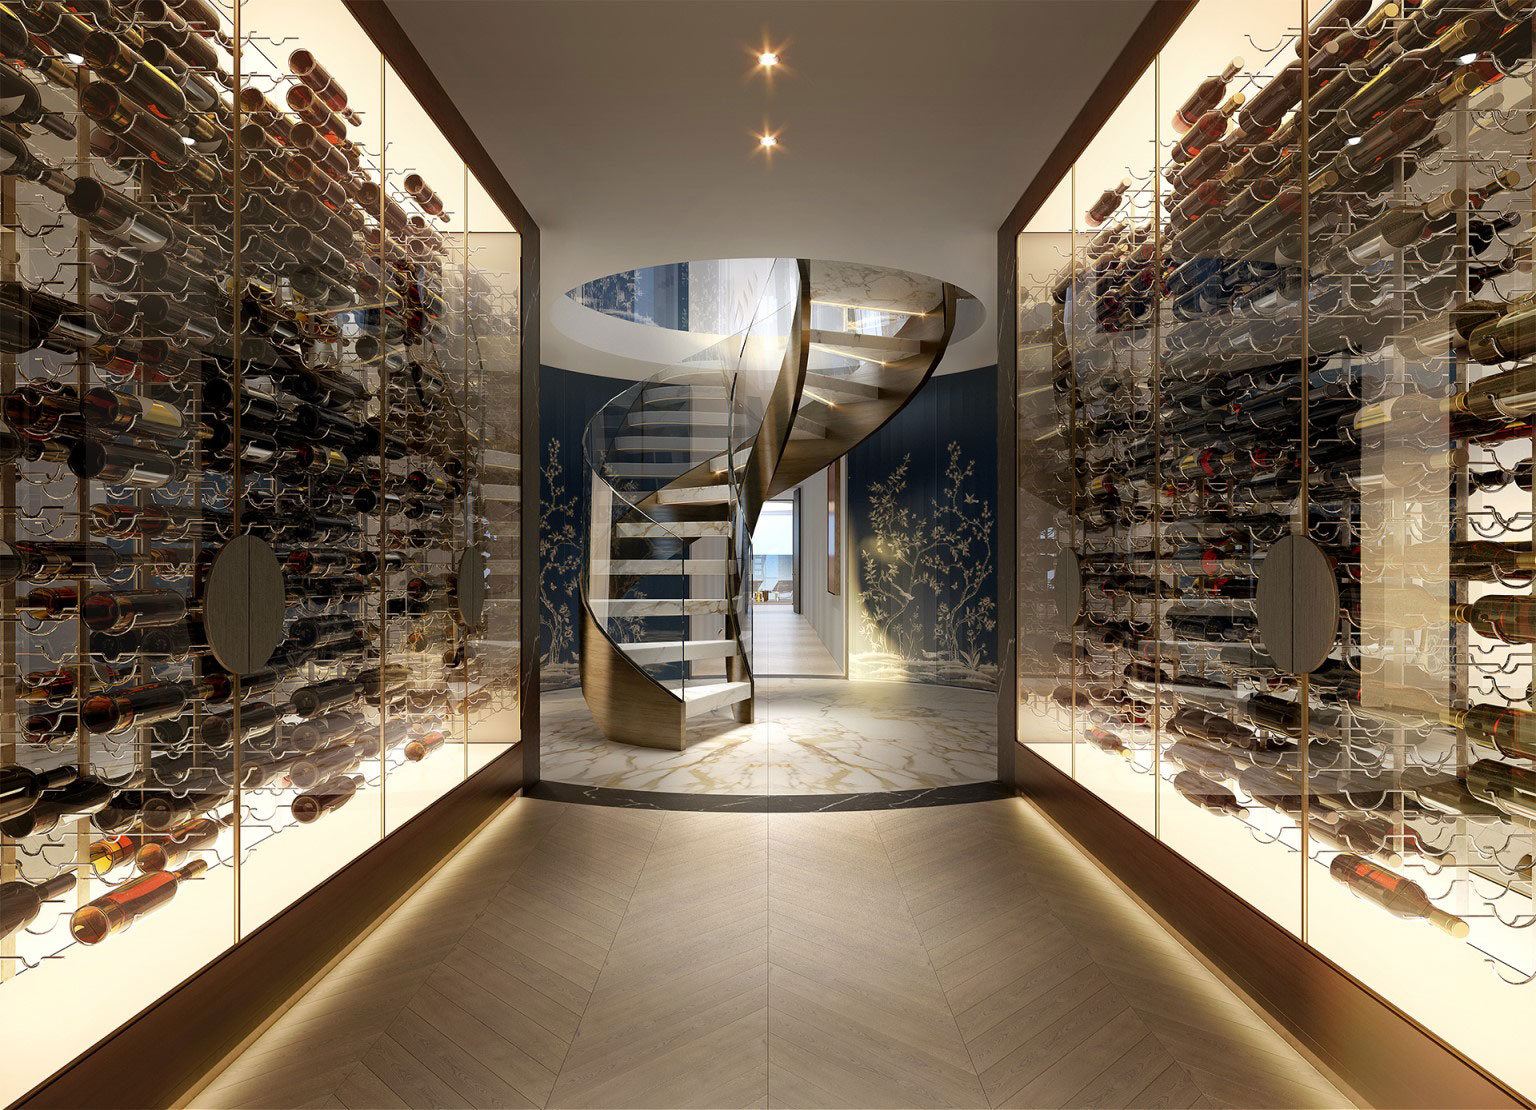 The penthouse will feature a 1000-bottle wine cellar which will be accessible via a sculptural spiral staircase.